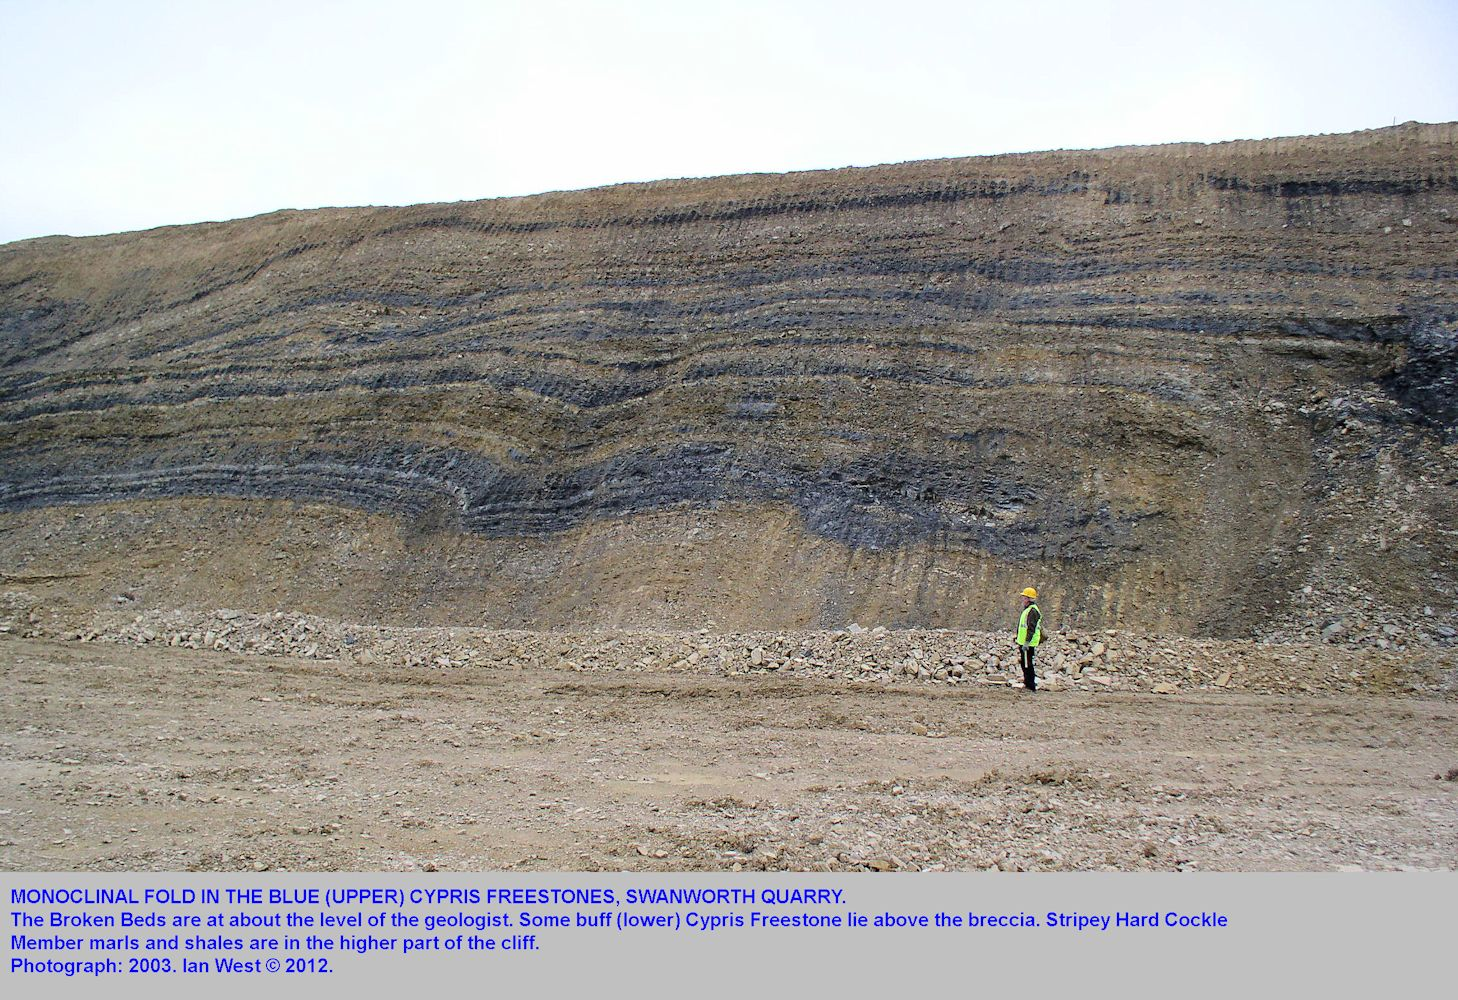 A monoclinal fold in the Blue Cypris Freestones, above the Broken Beds, Swanworth Quarry, 2003